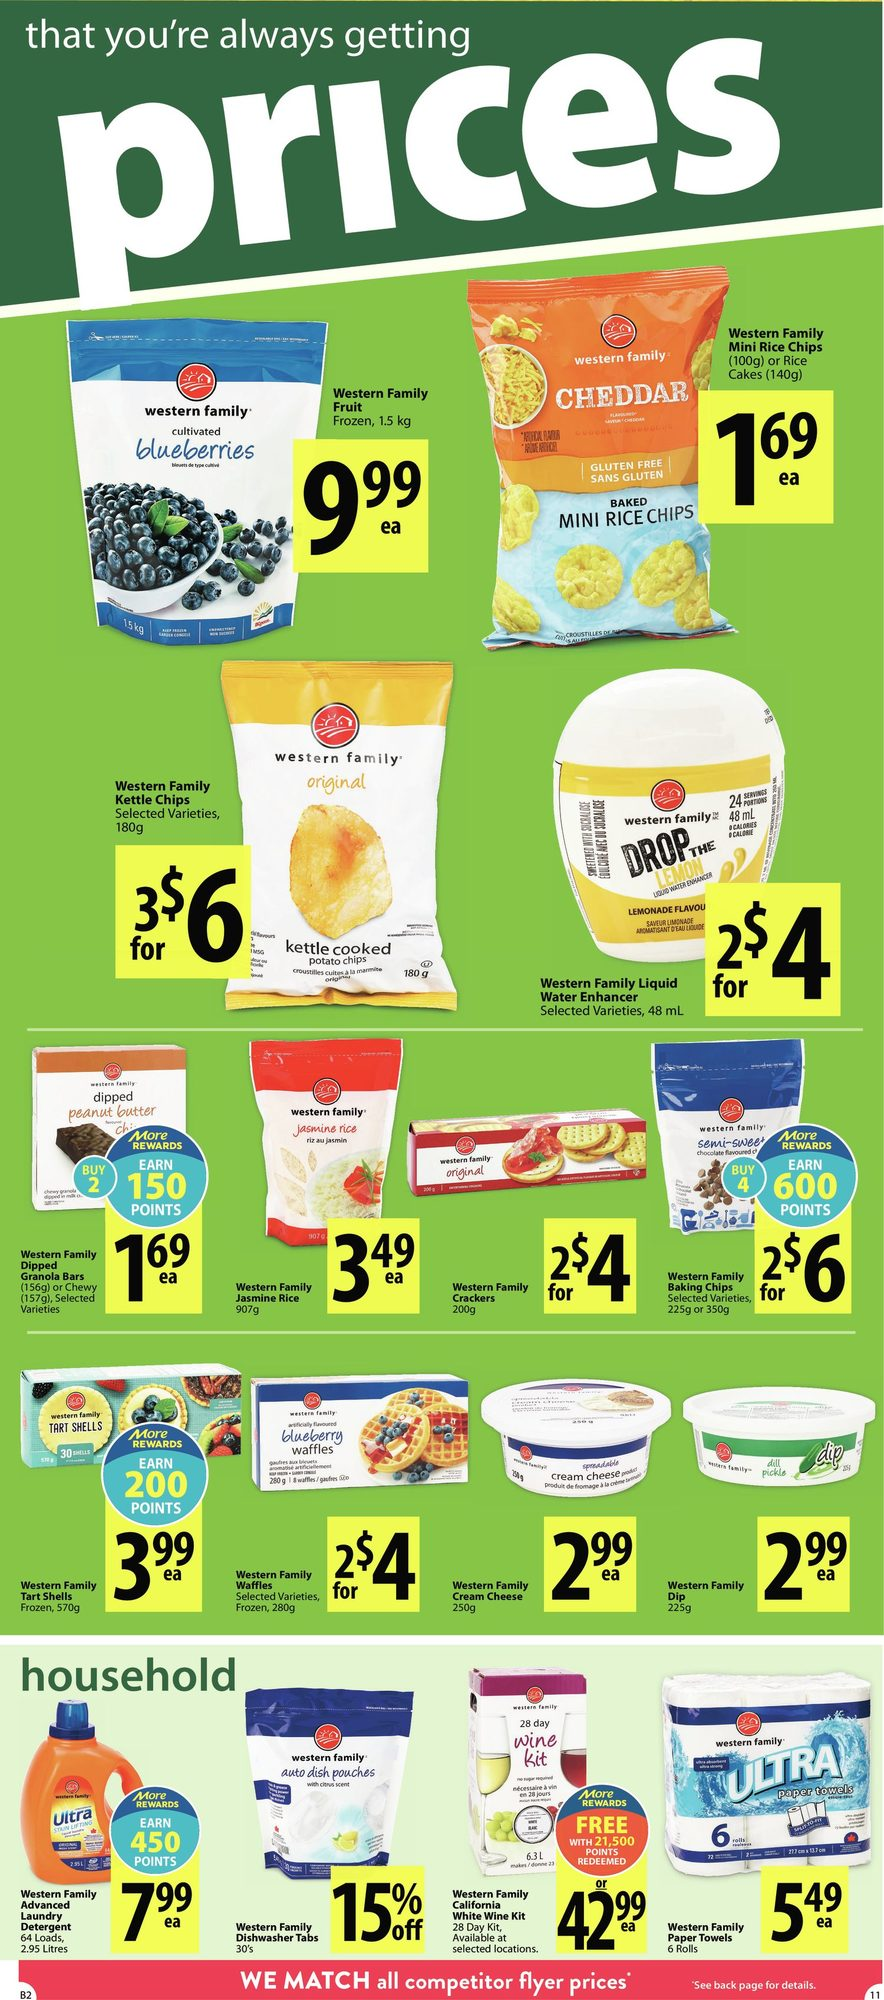 Save-On-Foods - Weekly Flyer Specials - Page 11